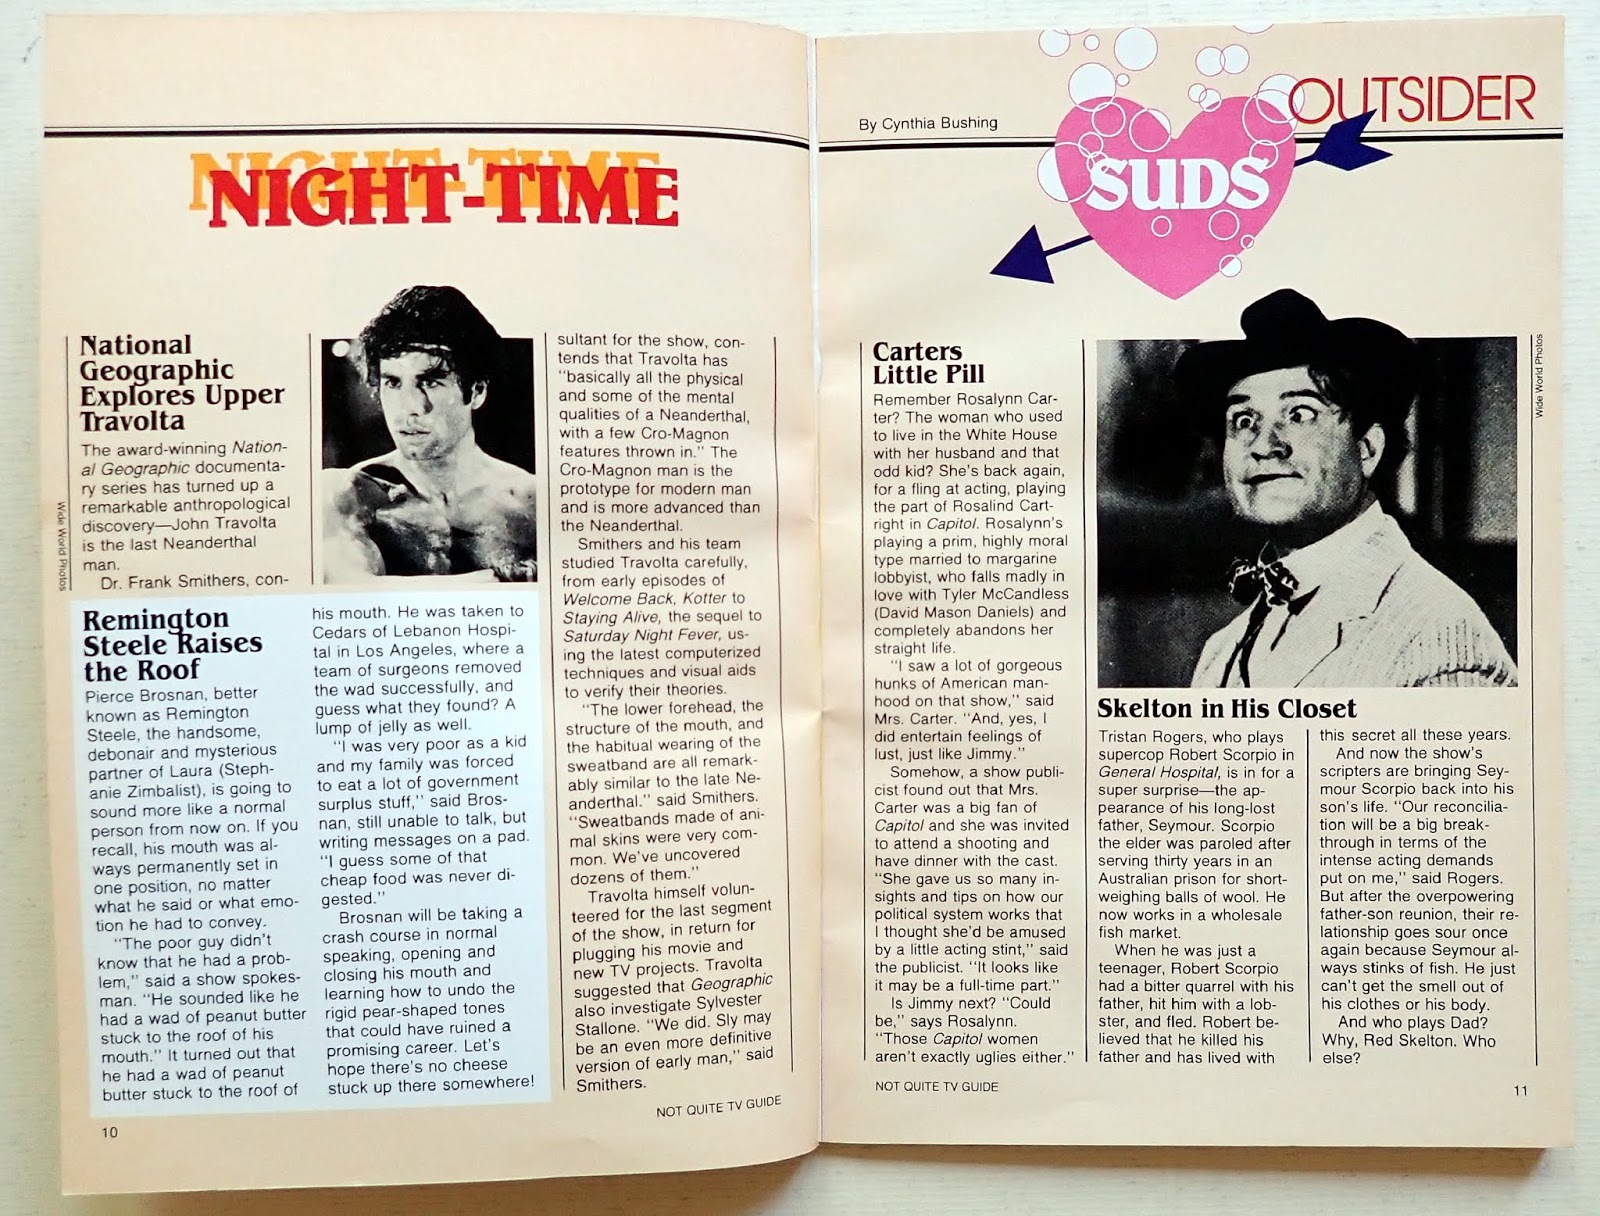 Past Print: Not quite TV Guide / 1983 paraody edition